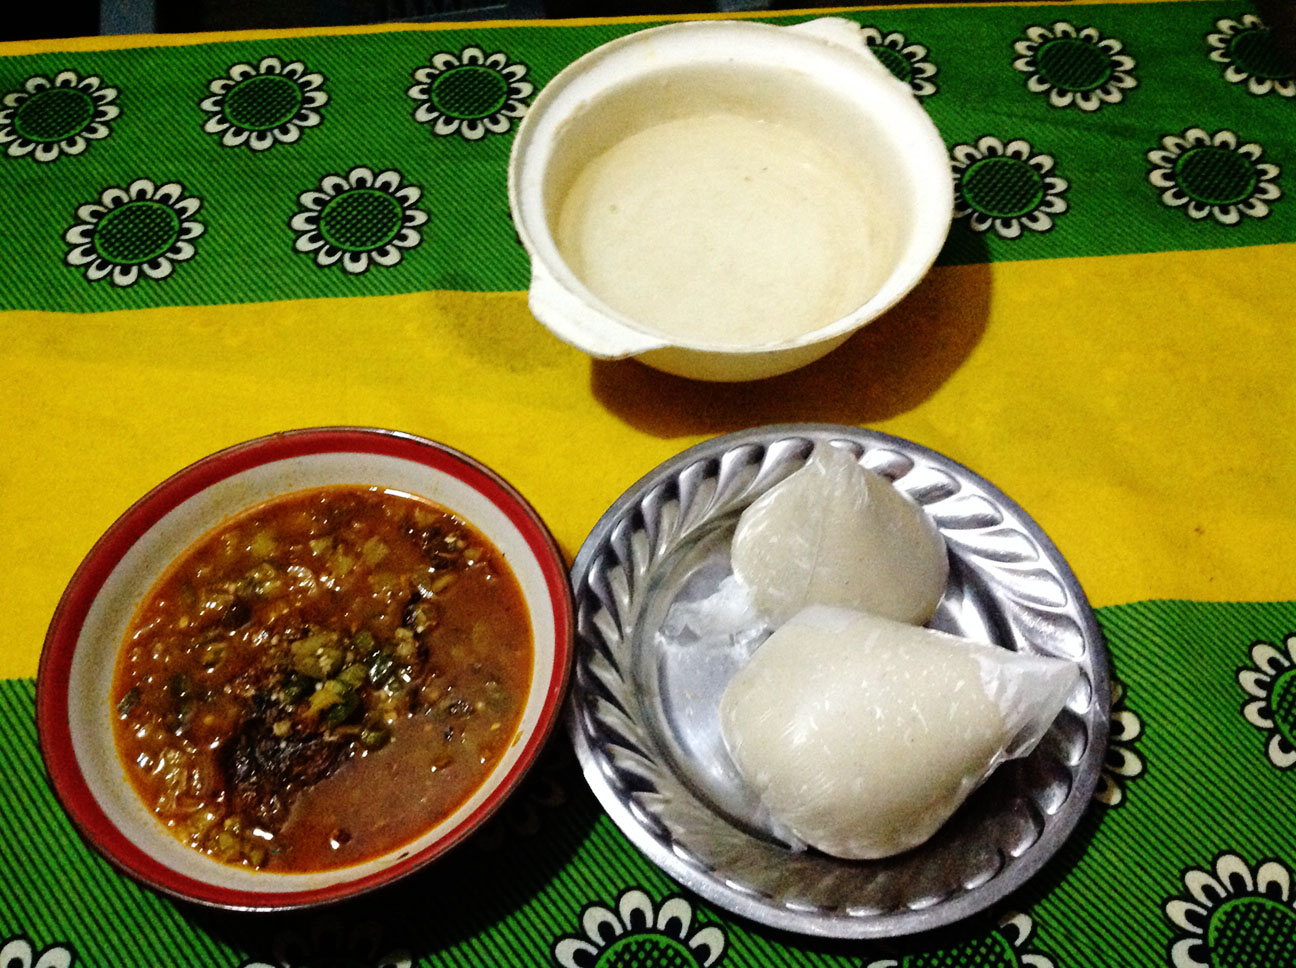 fufu with okro stew